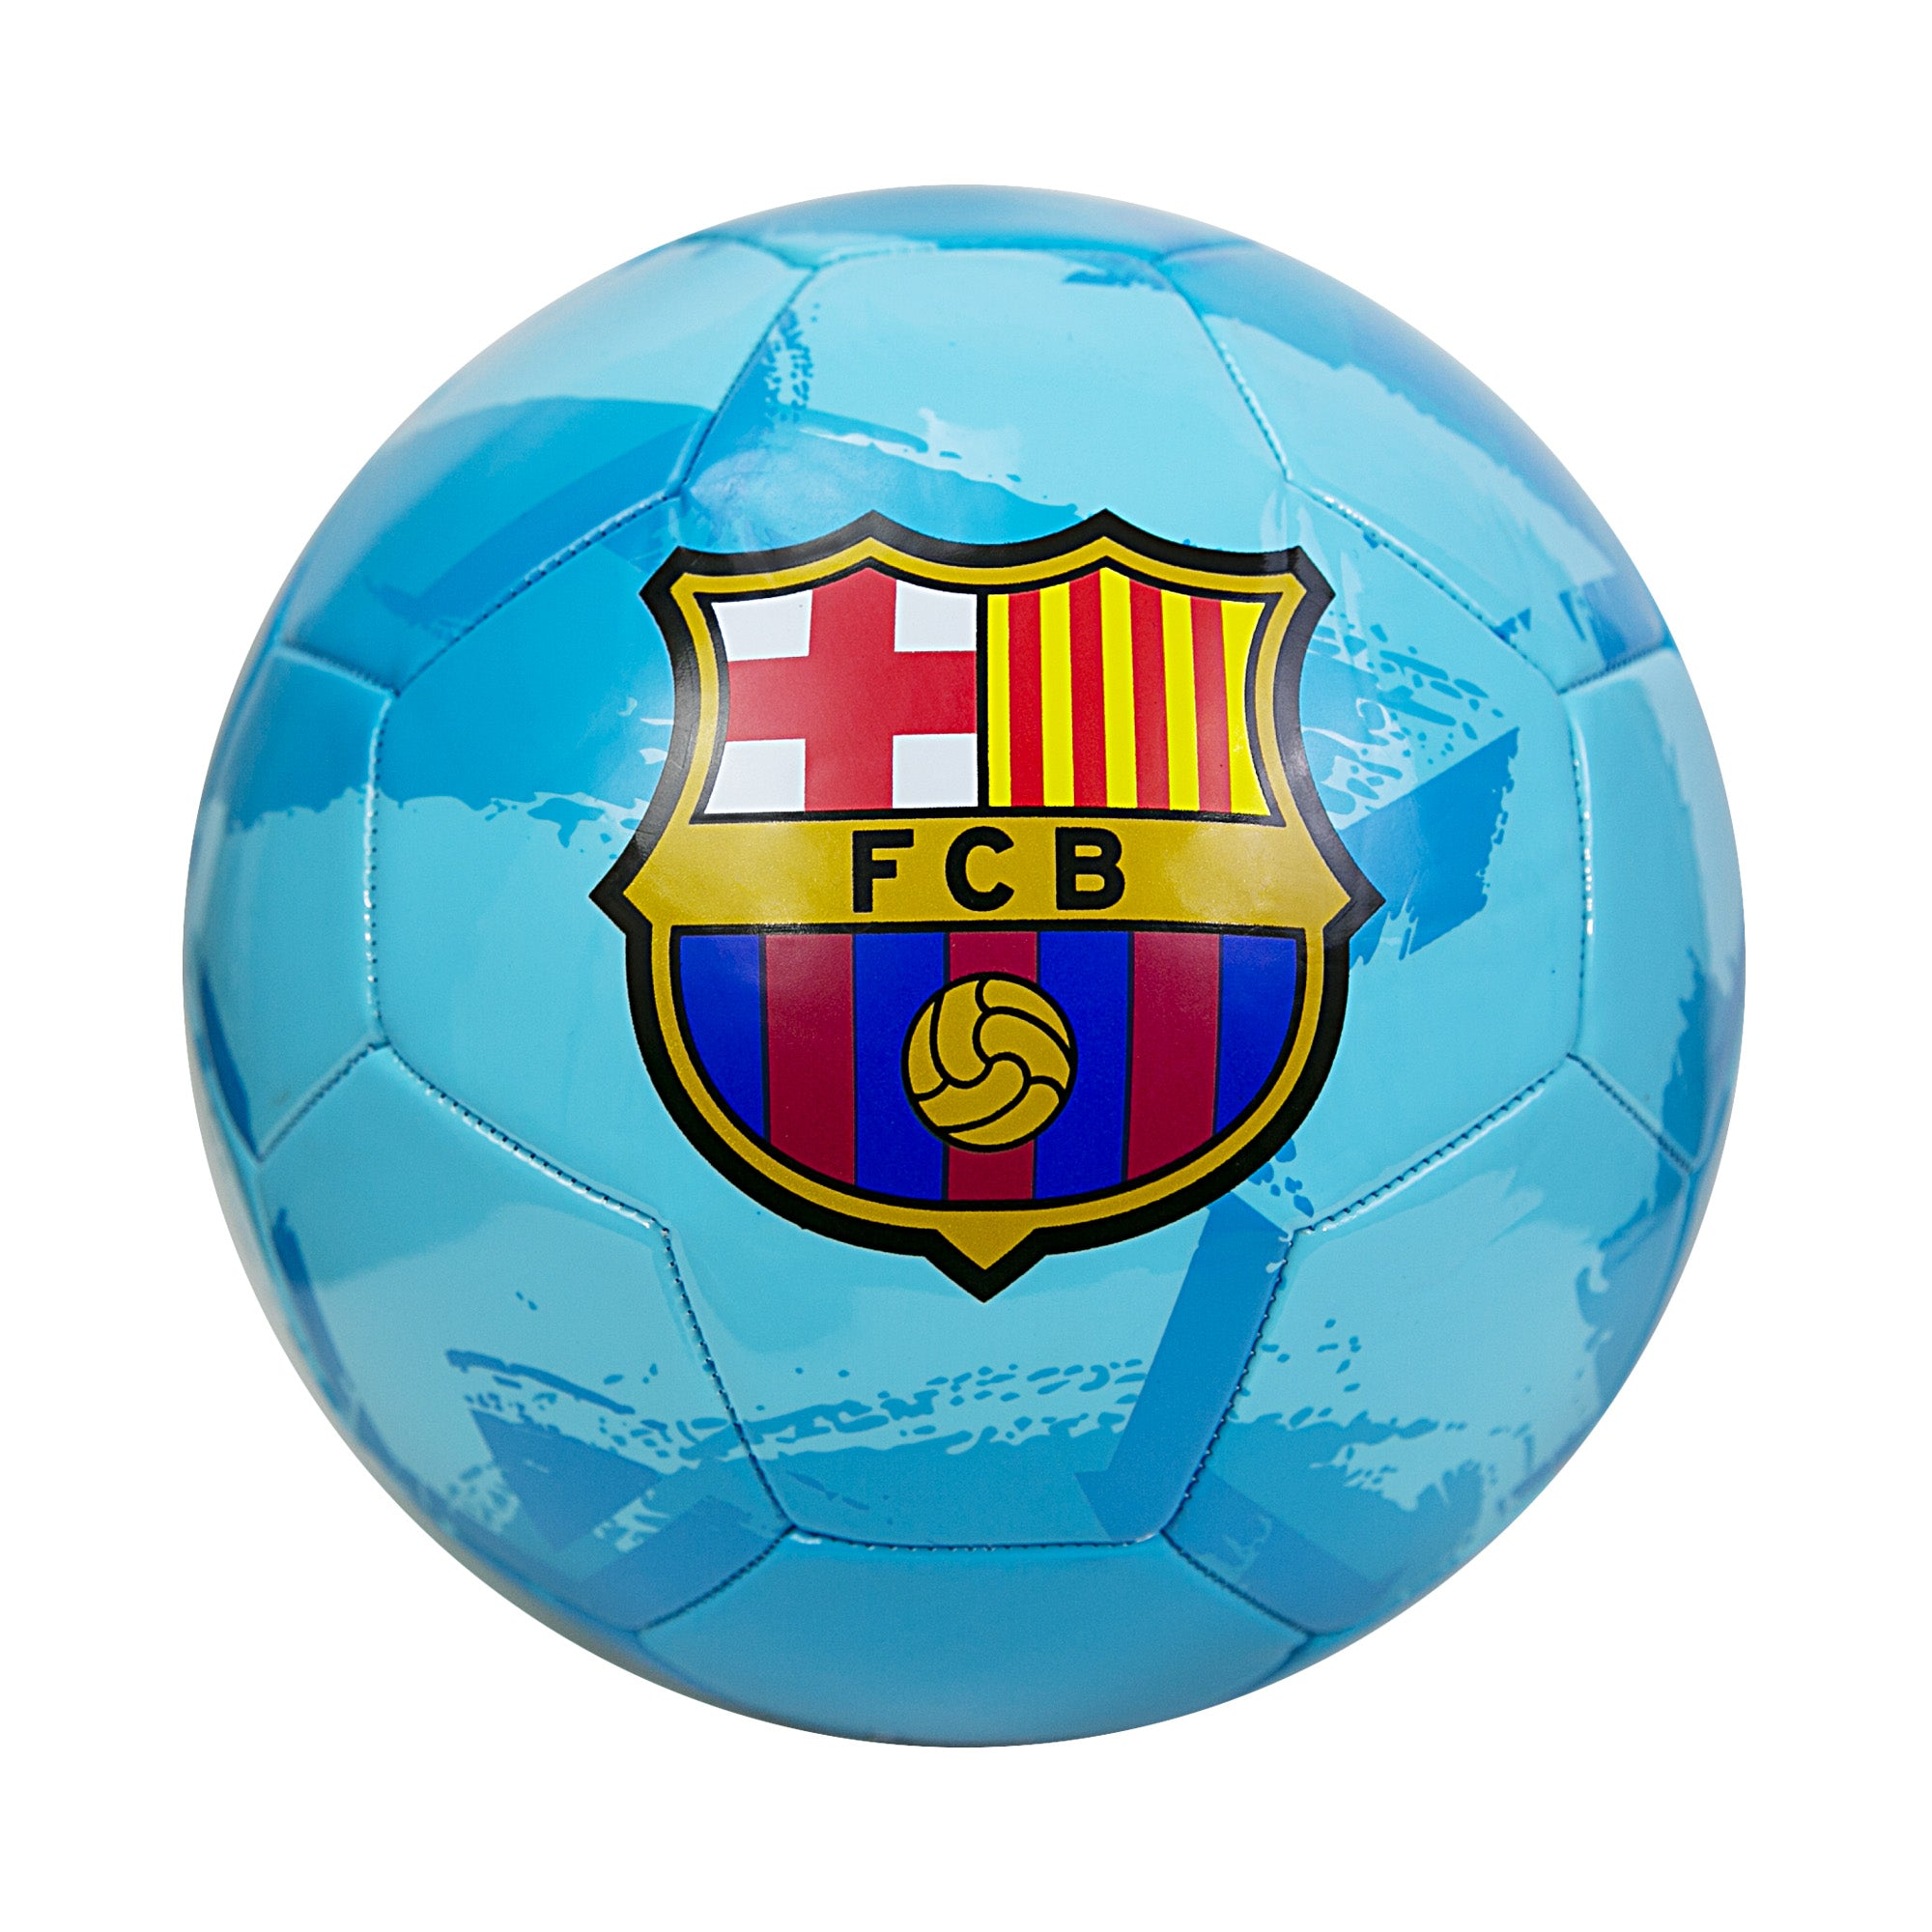 FC Barcelona Brush Size 5 Soccer Ball - Teal by Icon Sports